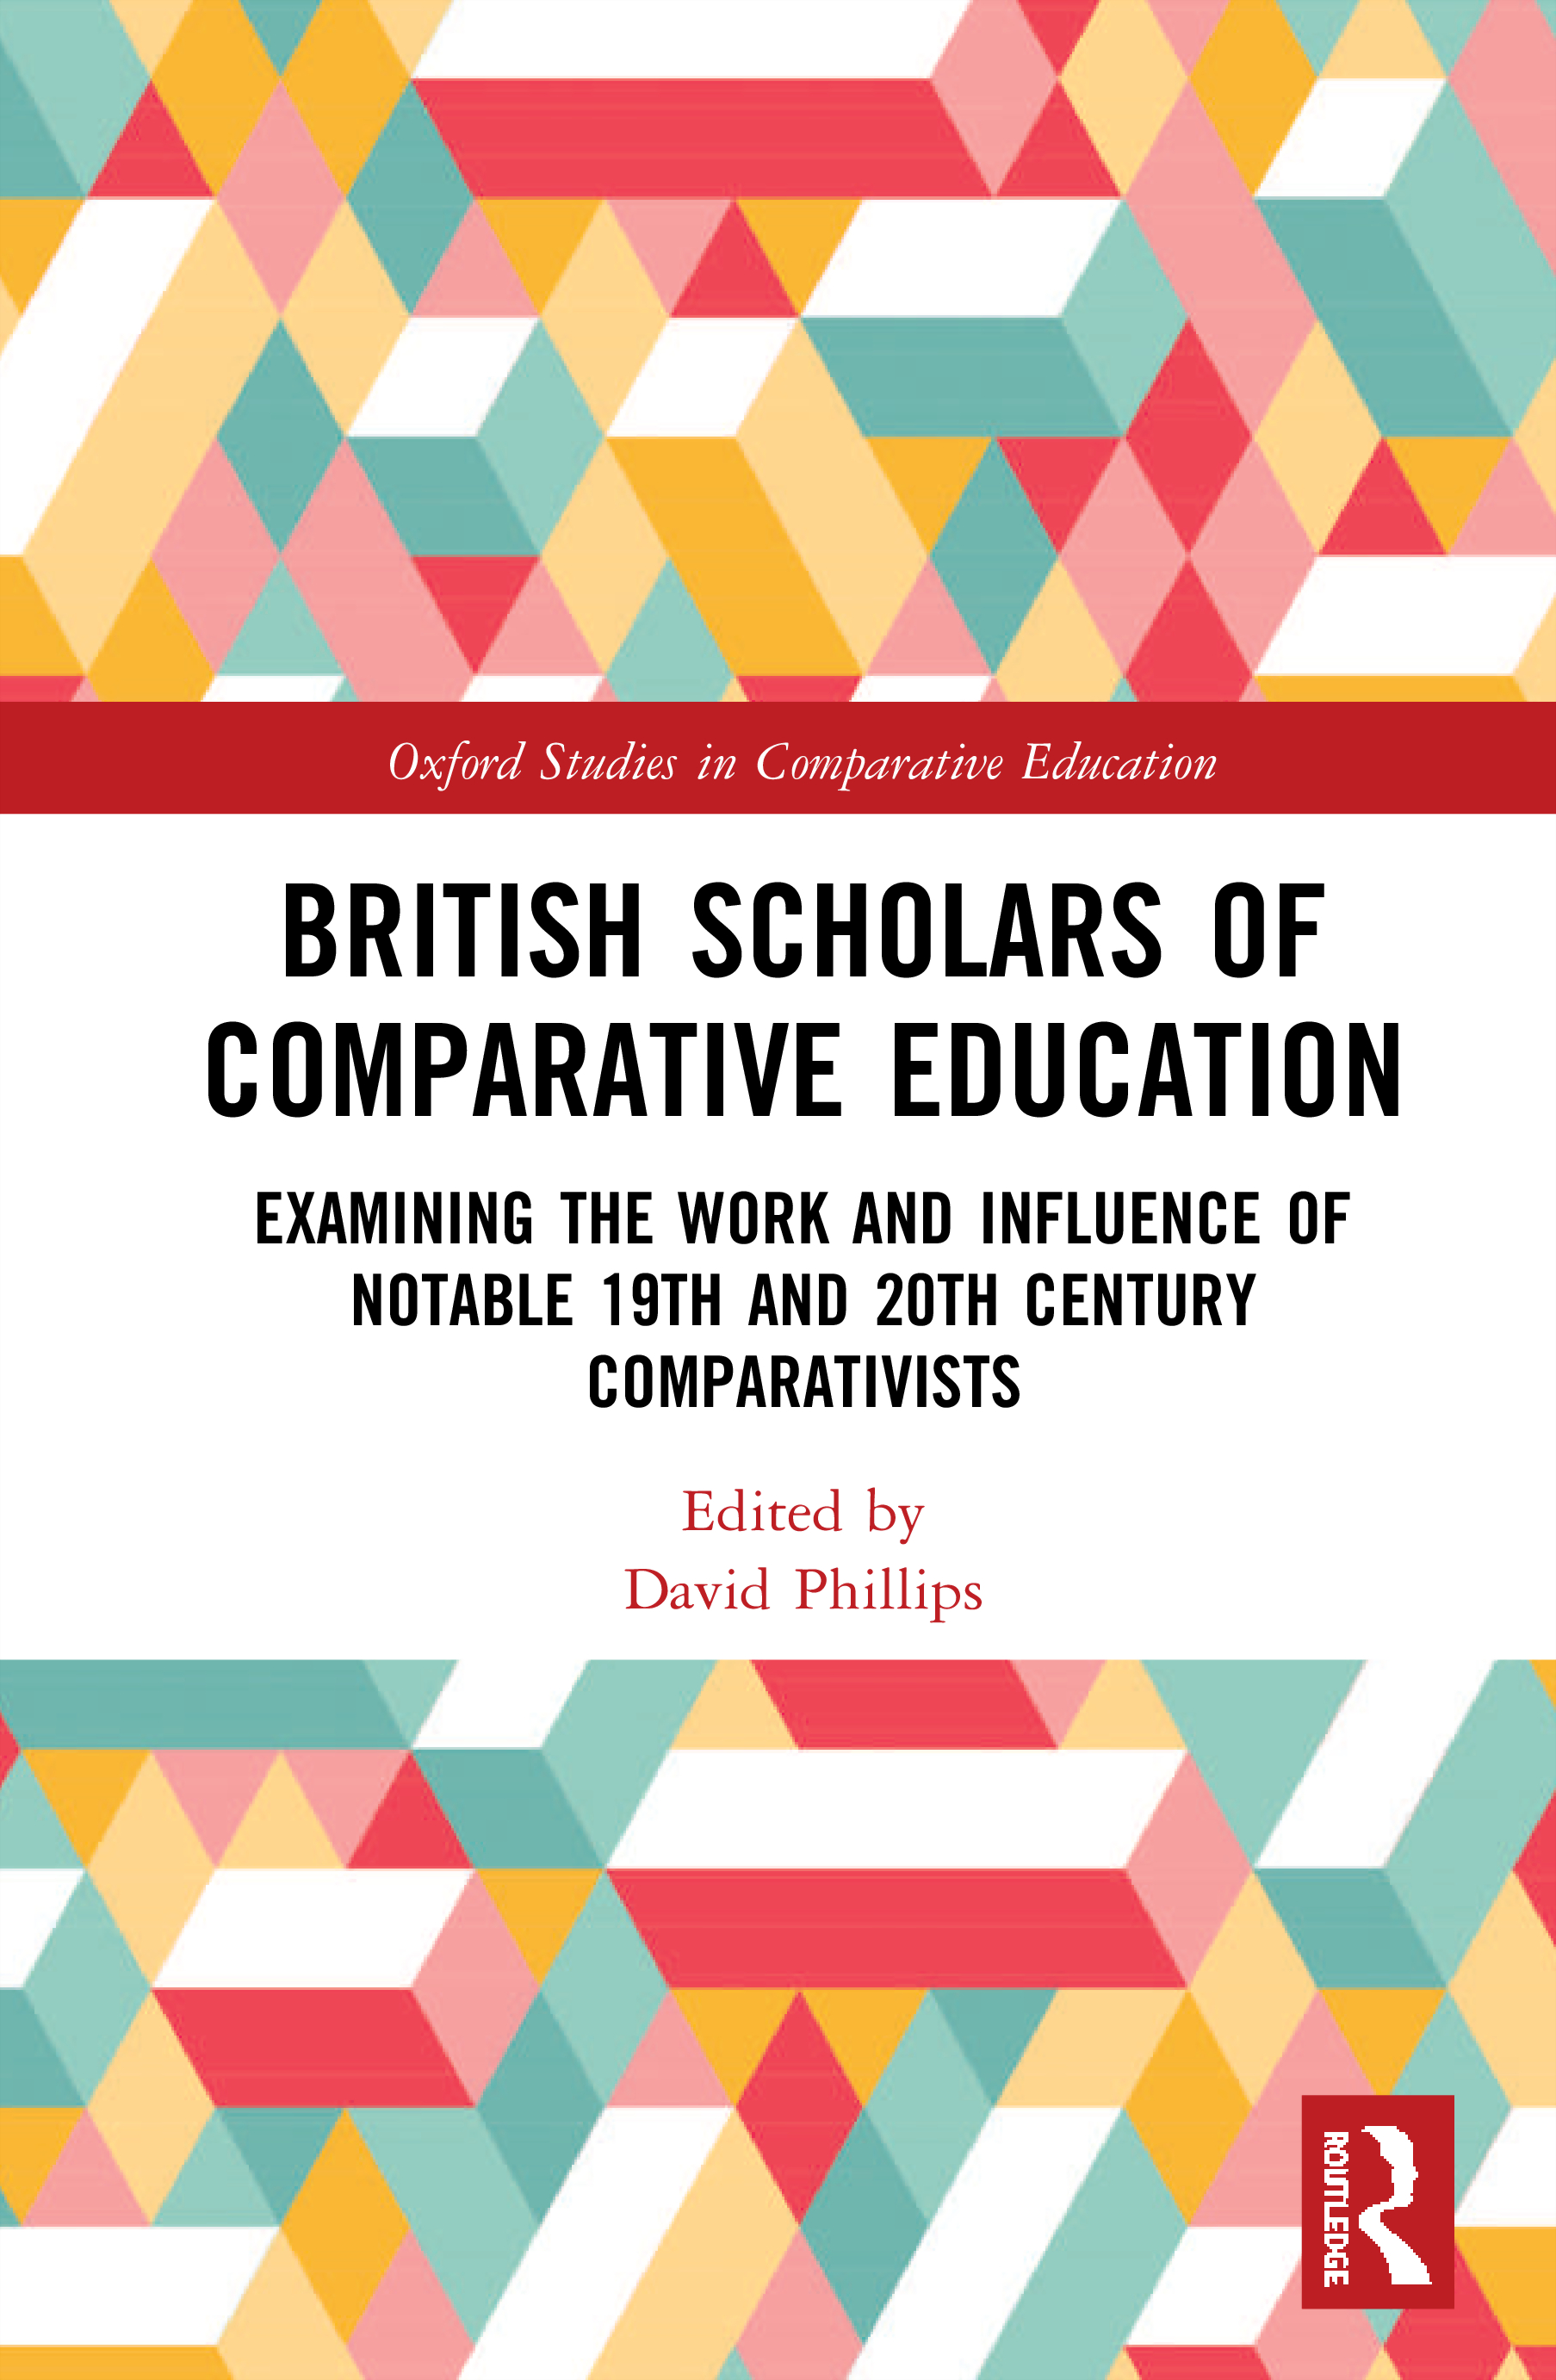 British Scholars of Comparative Education: Examining the Work and Influence of Notable 19th and 20th Century Comparativists, 1st Edition (Hardback) book cover